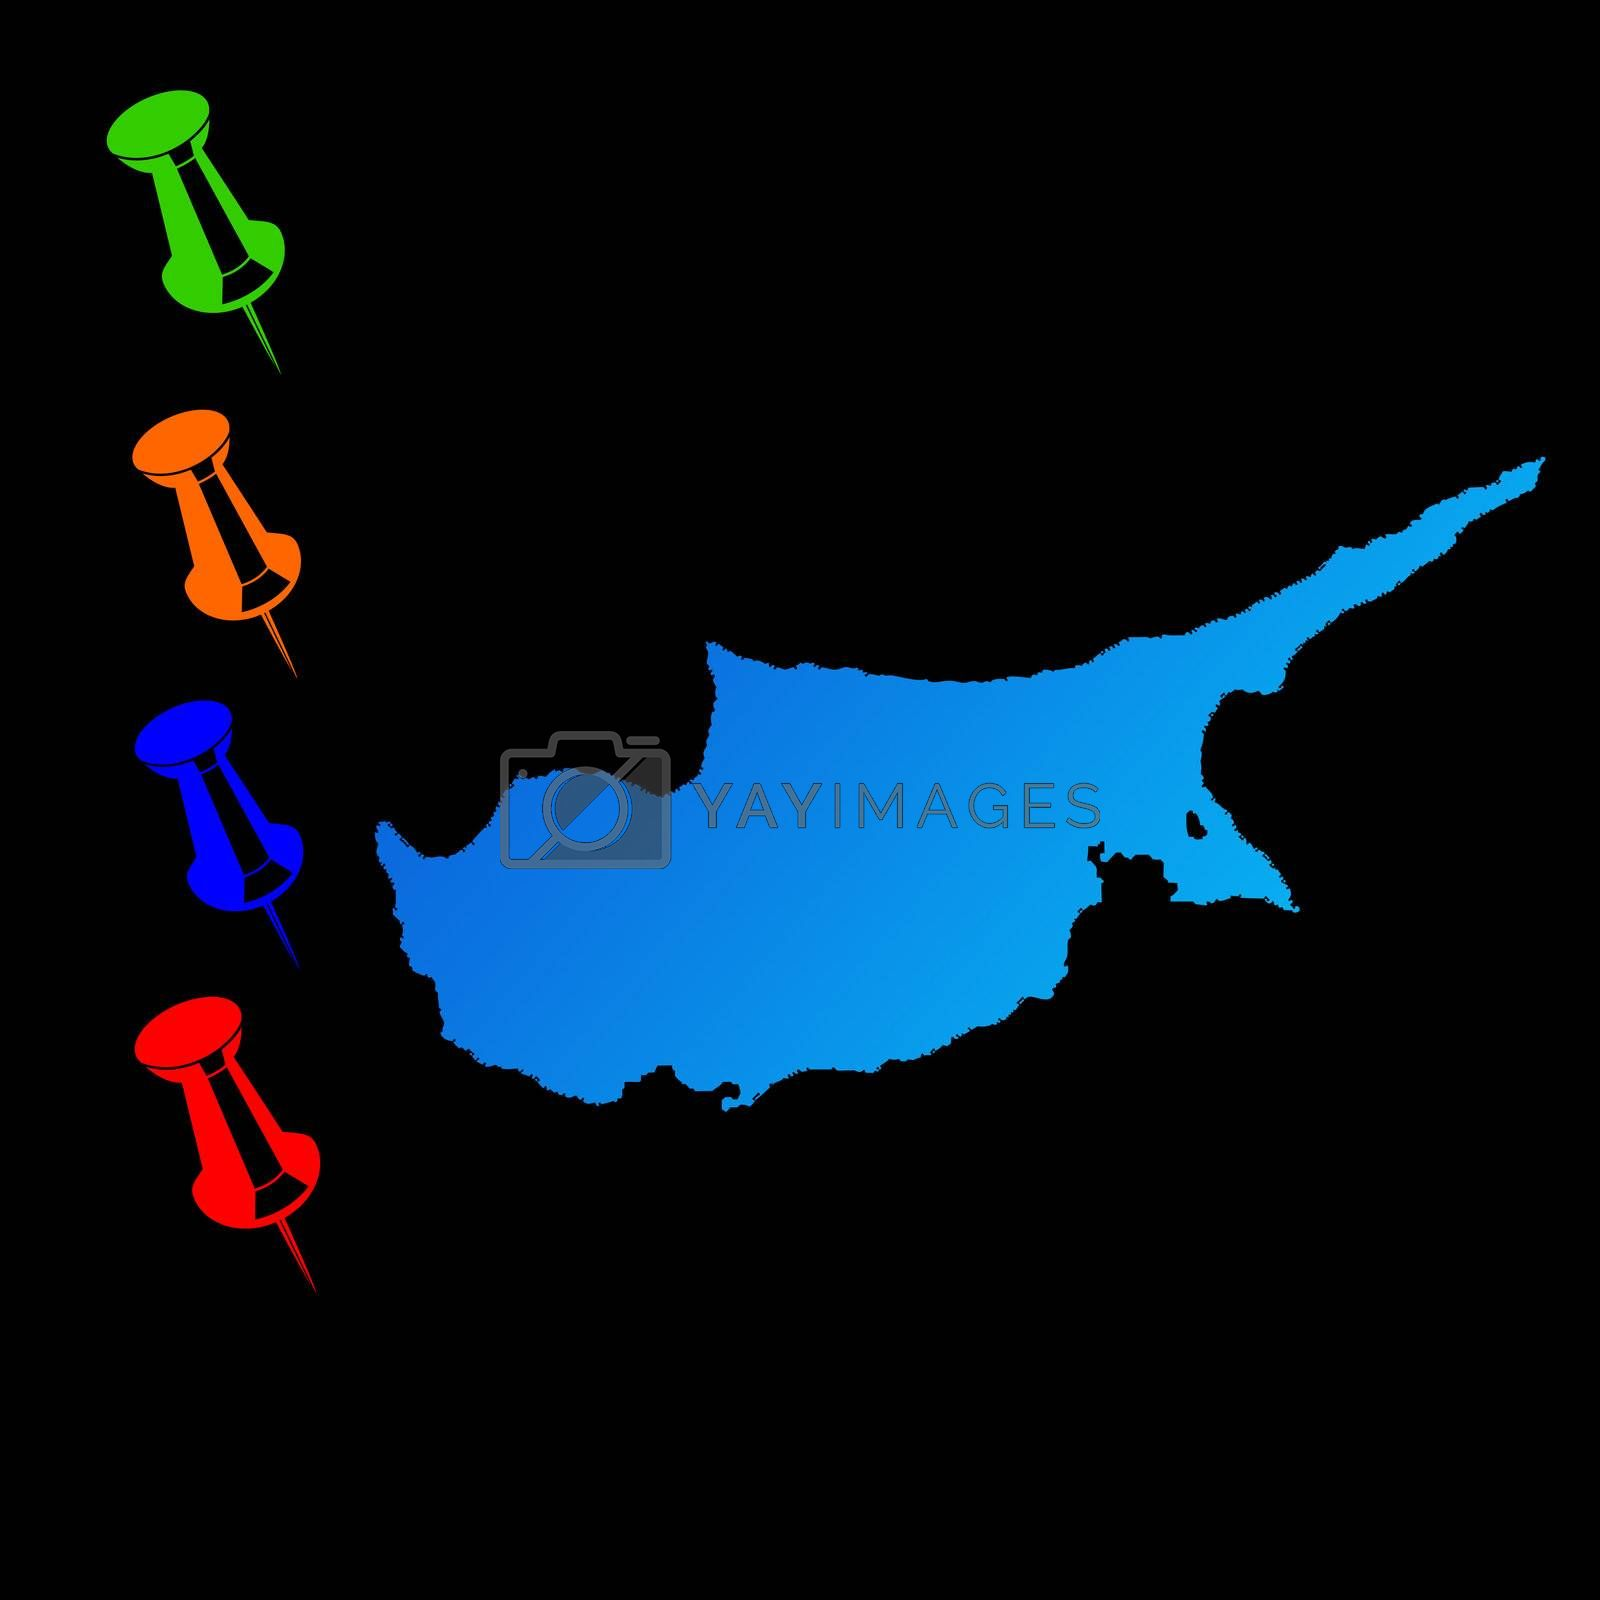 Cyprus travel map with push pins on black background.